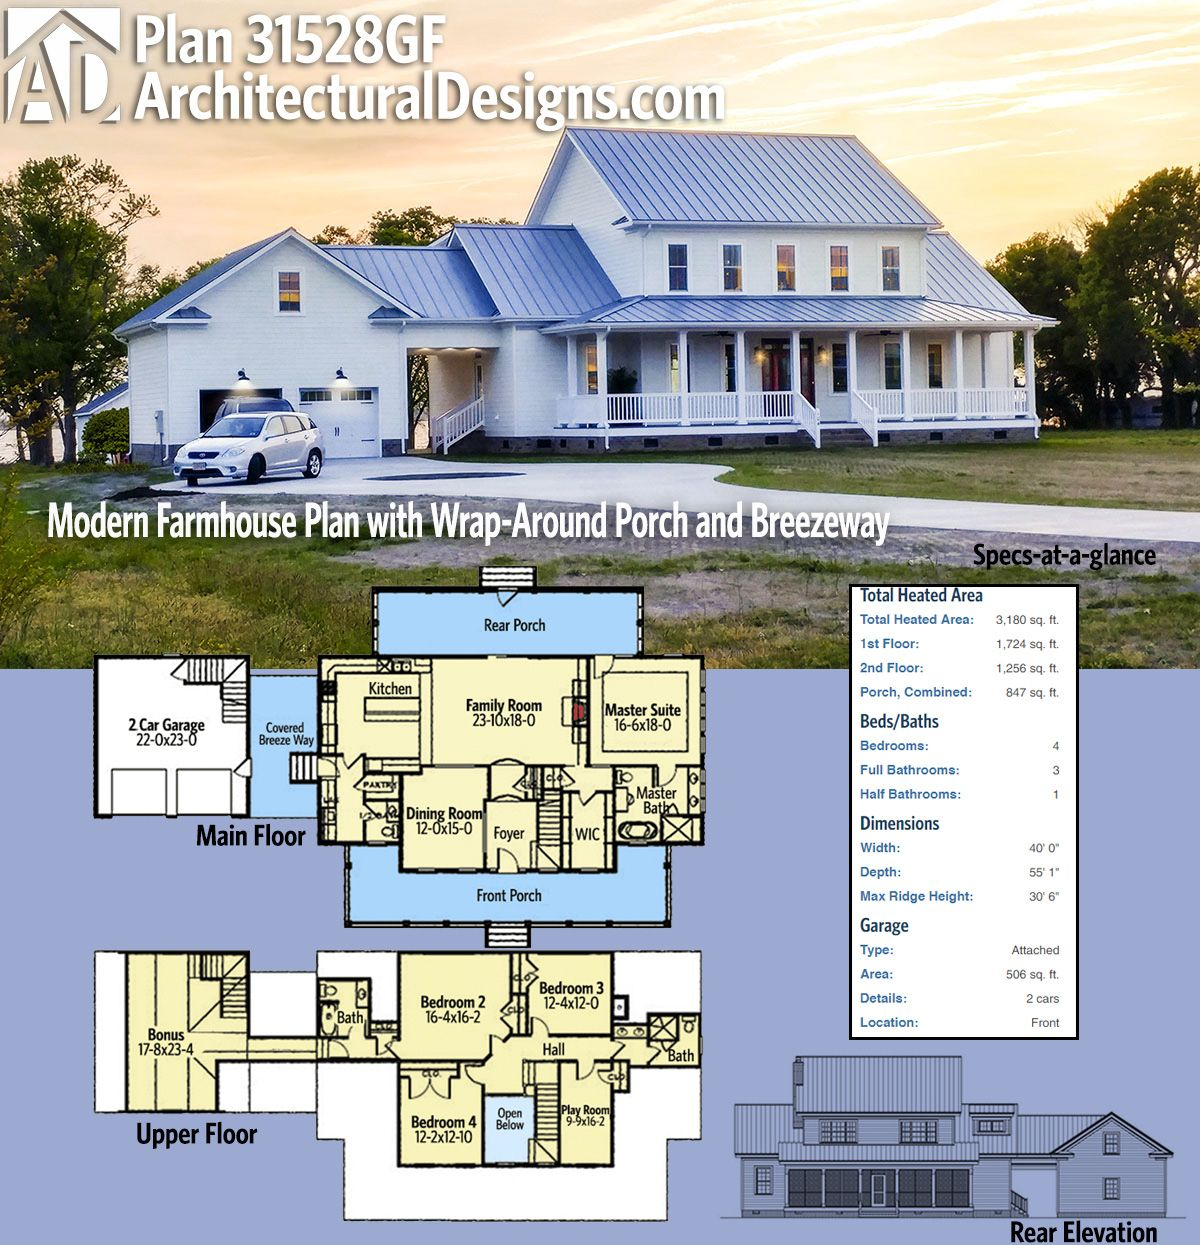 Plan 31528gf modern farmhouse plan with wrap around porch Breezeway house plans